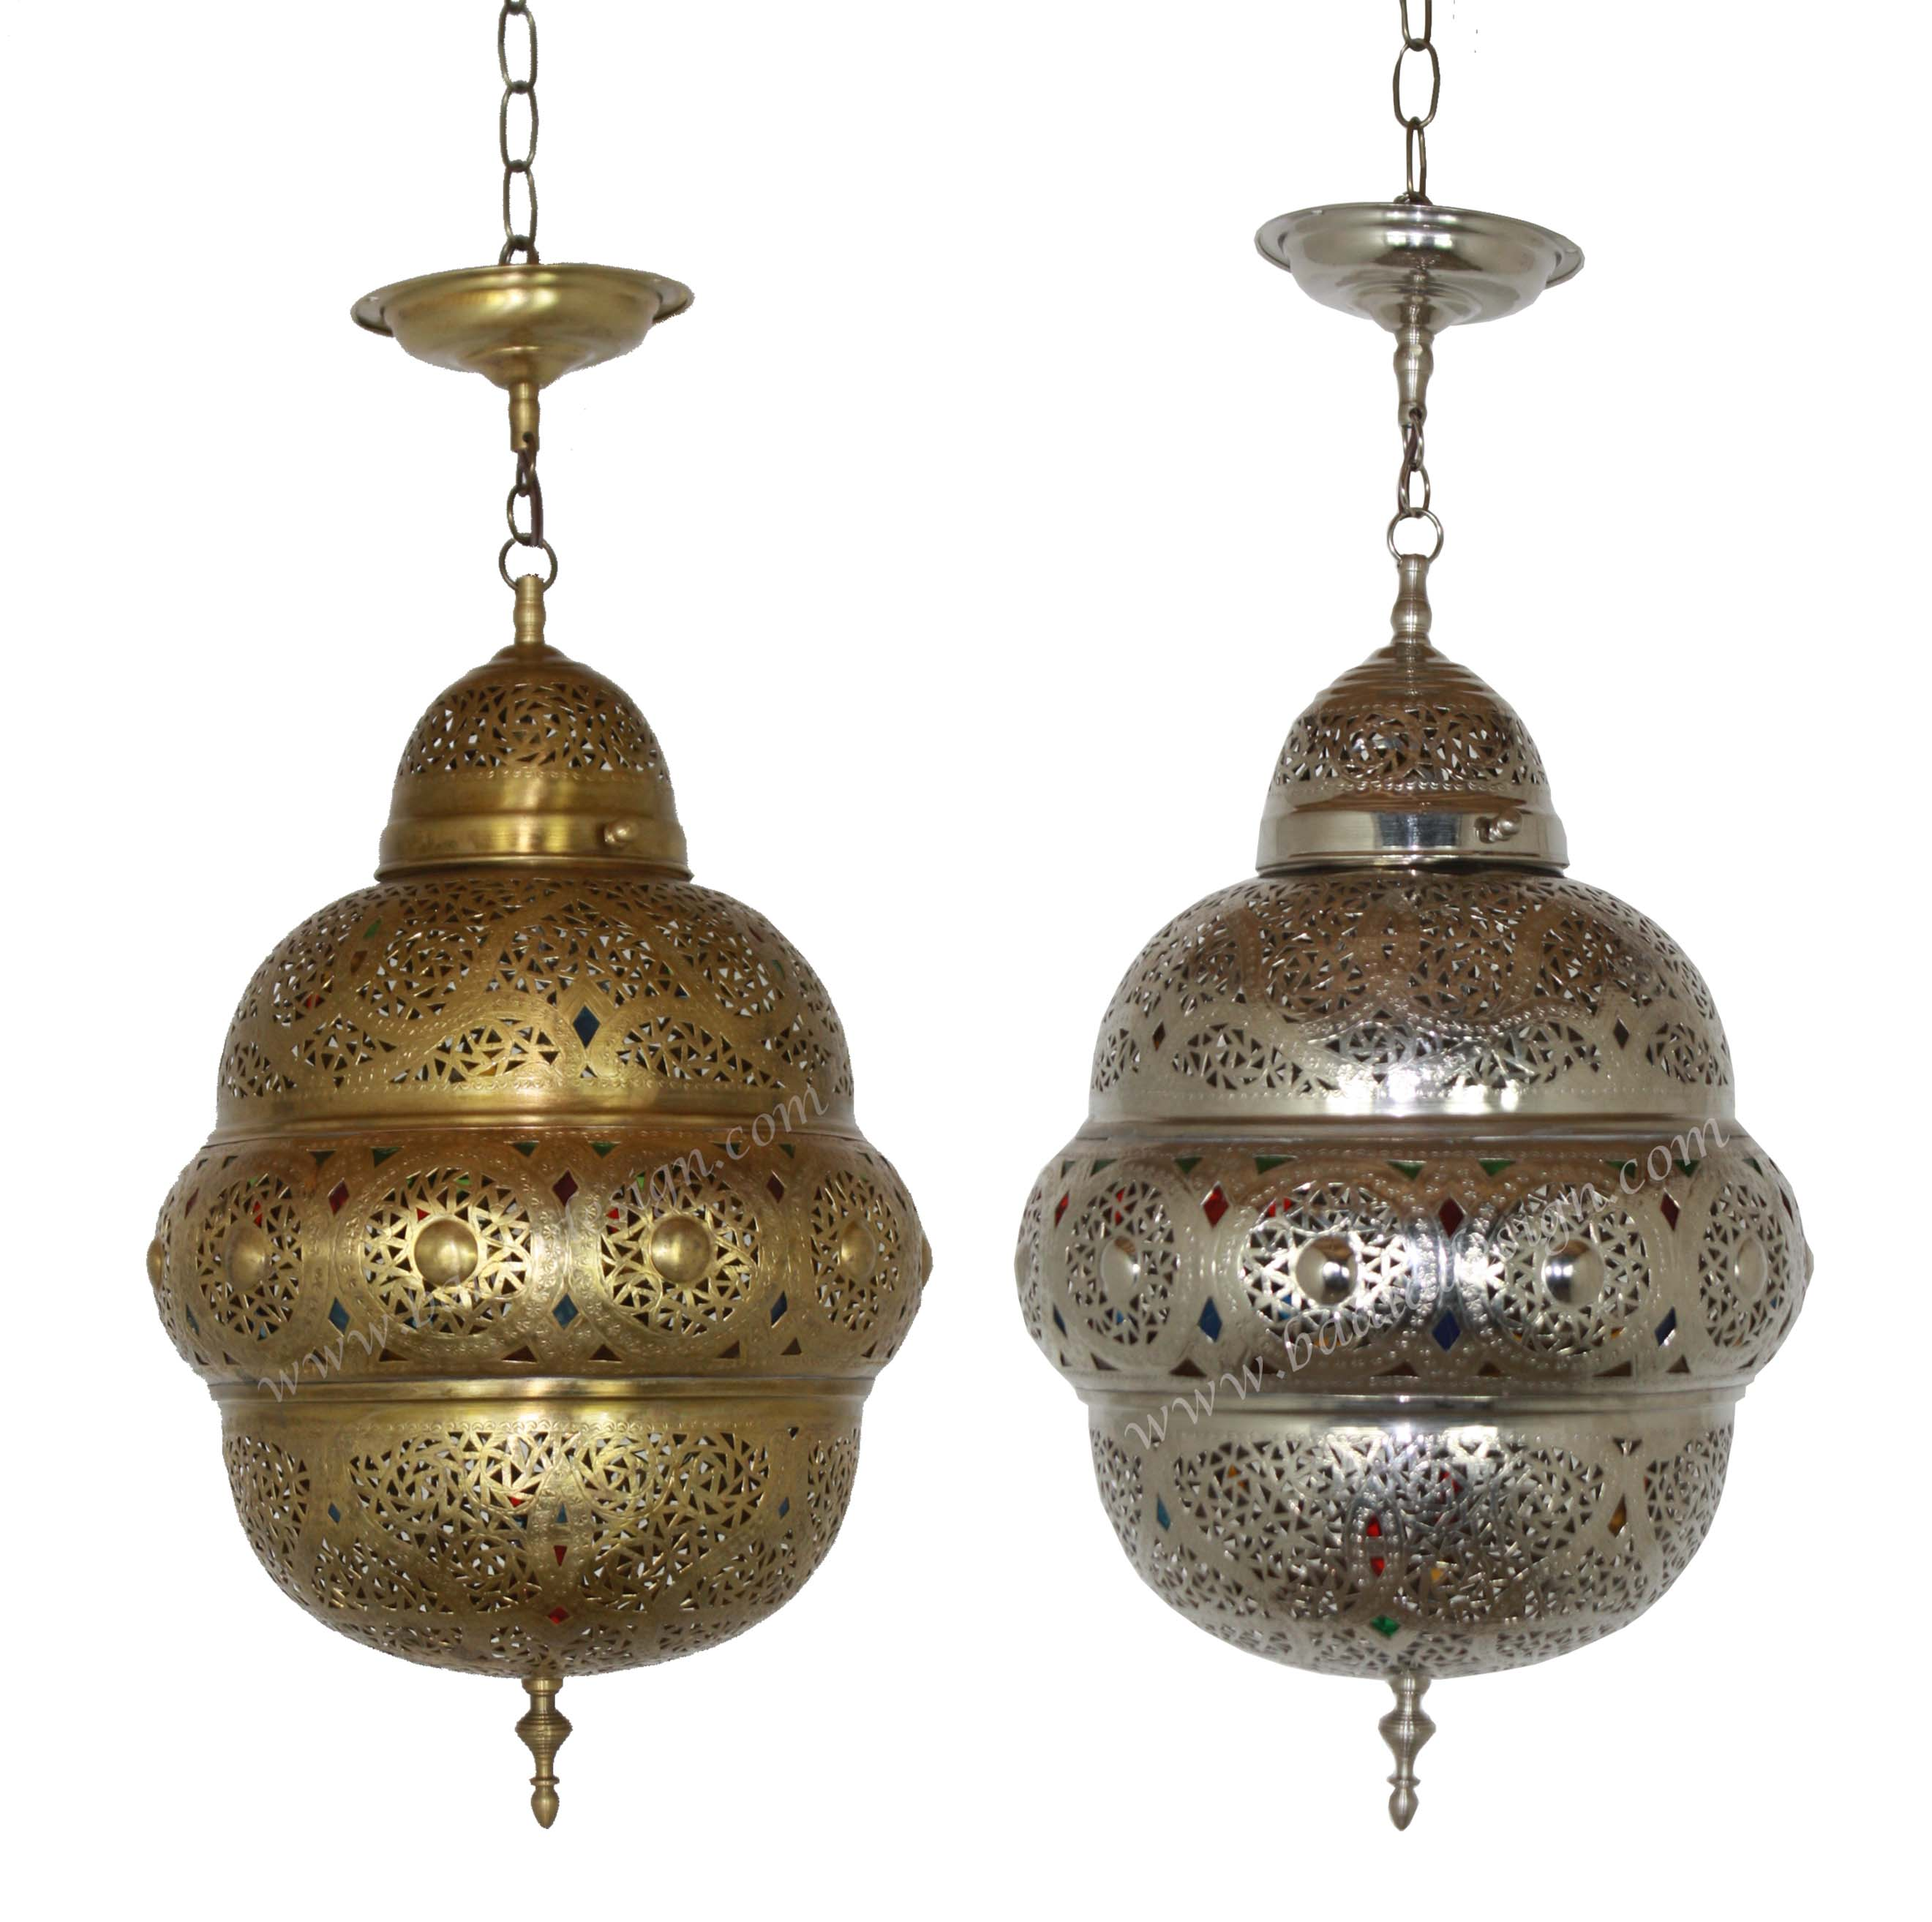 moroccan-brass-and-silver-pendant-lights-lig226.jpg